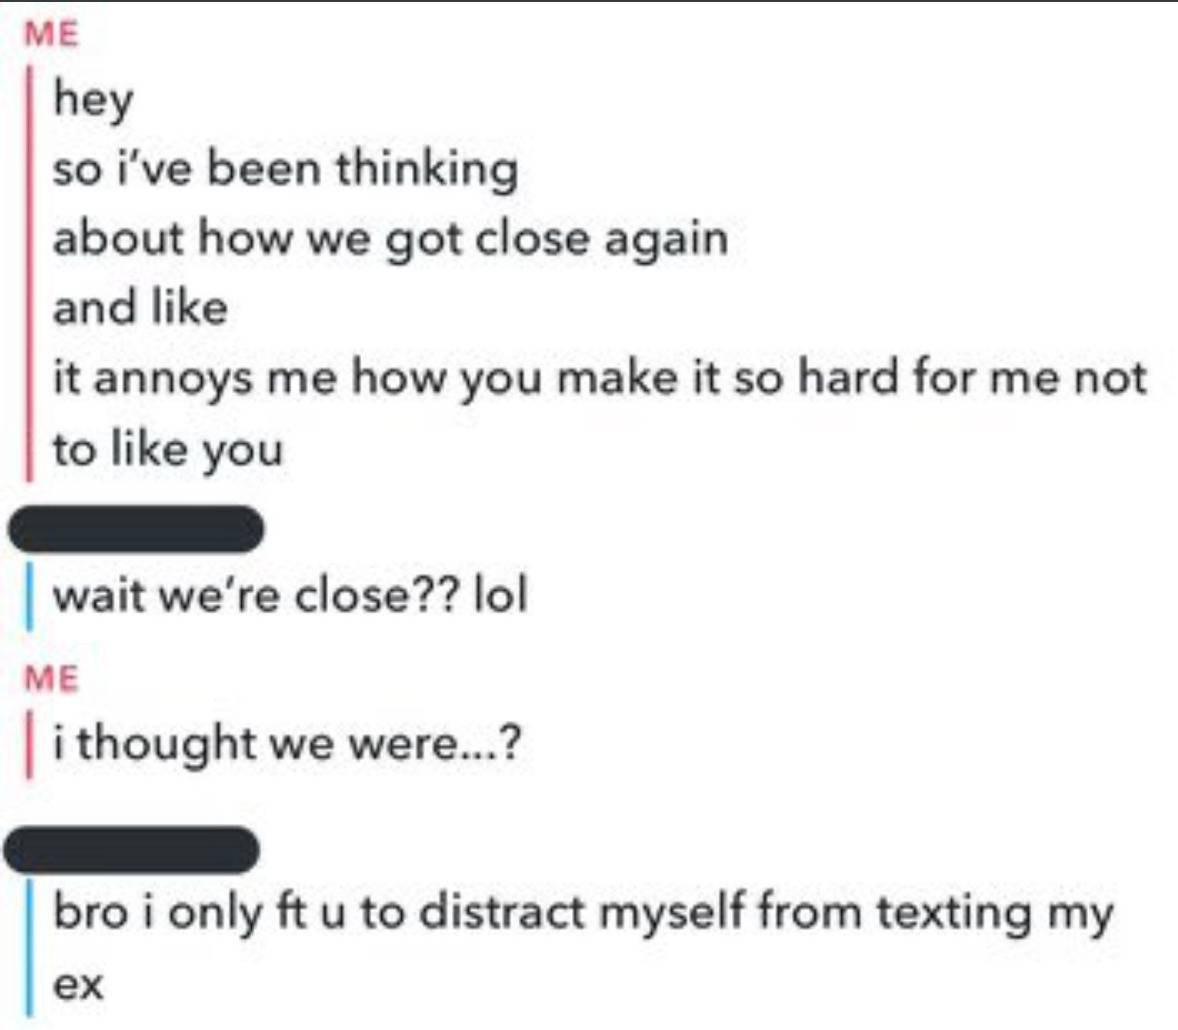 man: hey, so I've been thinking about how we got close again and like, it annoys me how you make it so hard for me not to like you. Woman: wait, we're close? lol. M: I thought we were...? W: bro I only FT you to distract myself from texting my ex